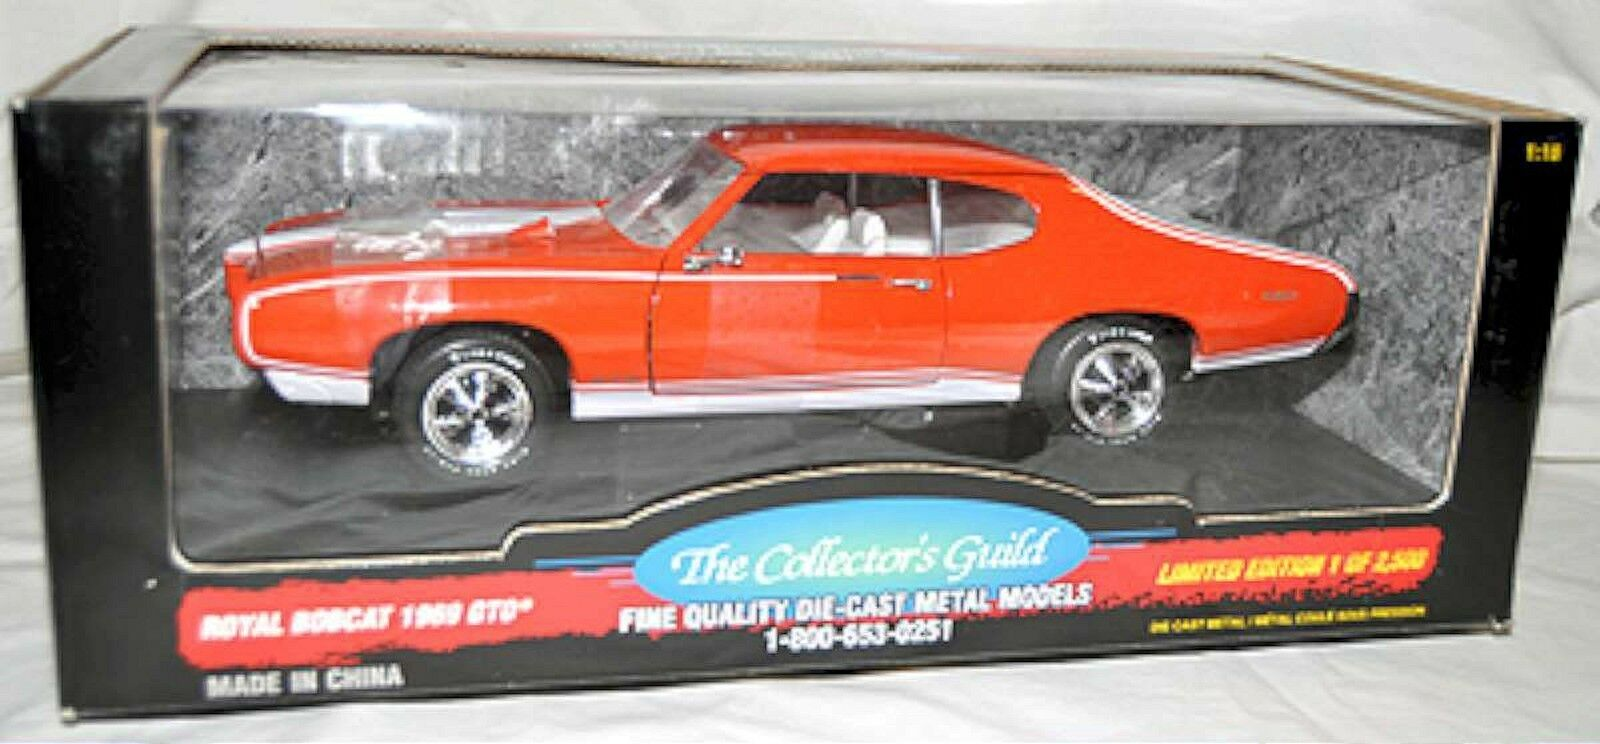 Ertl 1   18 1969 pontiac gto royal bobcat Orange 29094 amerikanische muskeln 69 1of-2500